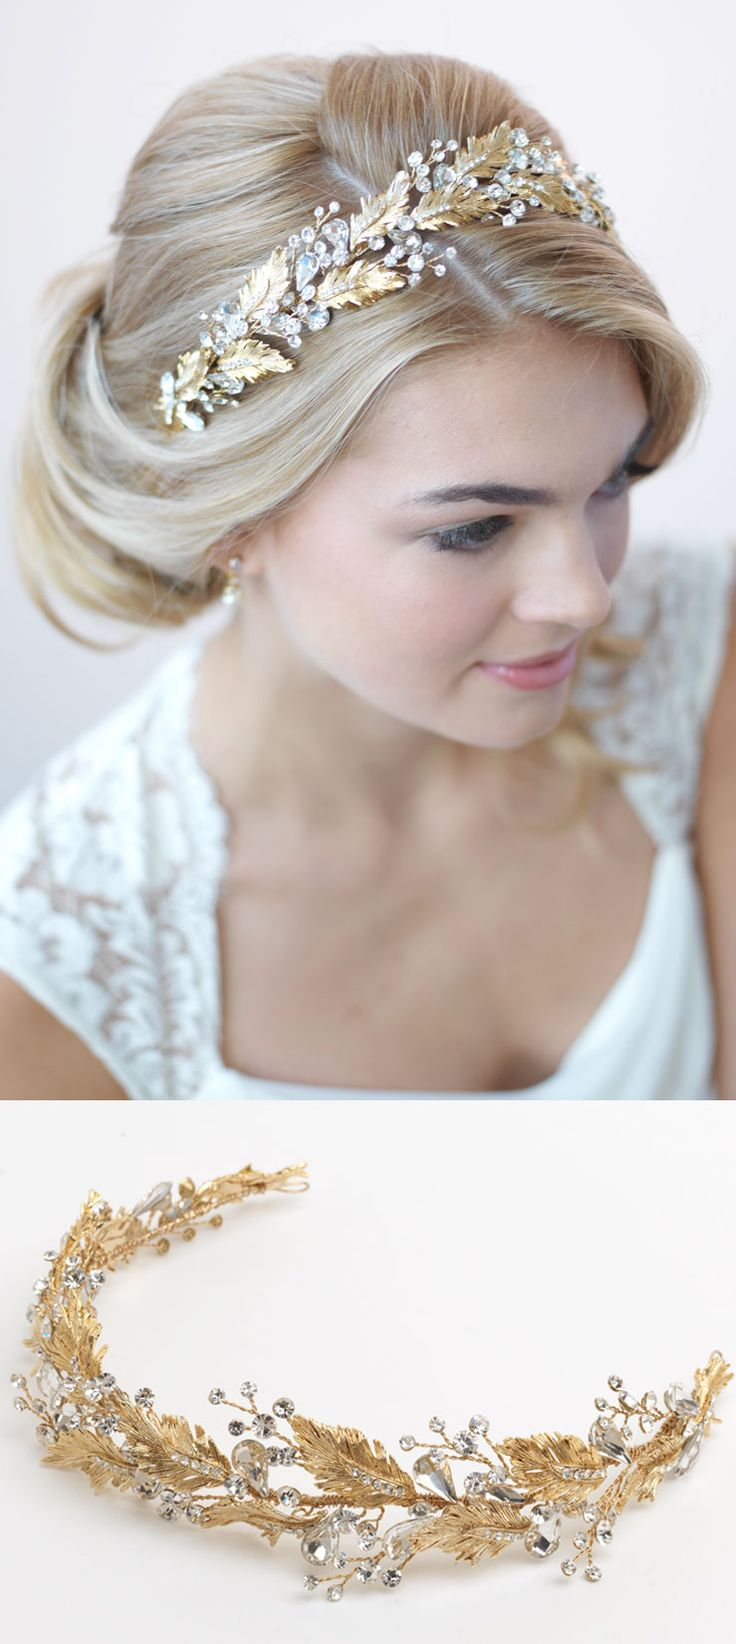 Gorgeous gold botanical wedding headband perfectly accents this timeless bridal updo <3